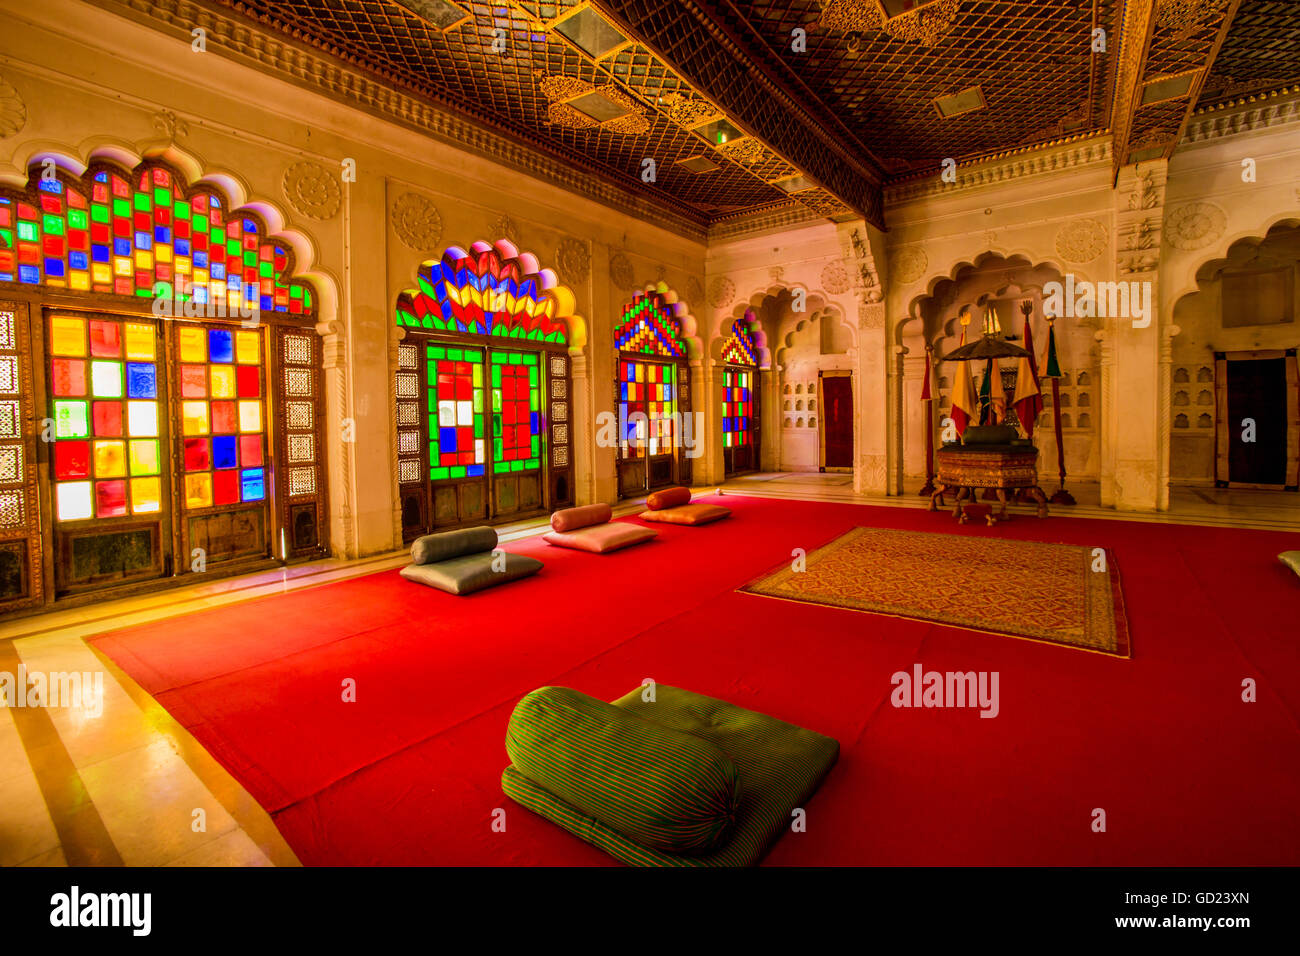 The Maharaja's sitting room in Mehrangarh Fort in Jodhpur, the Blue City, Rajasthan, India, Asia - Stock Image